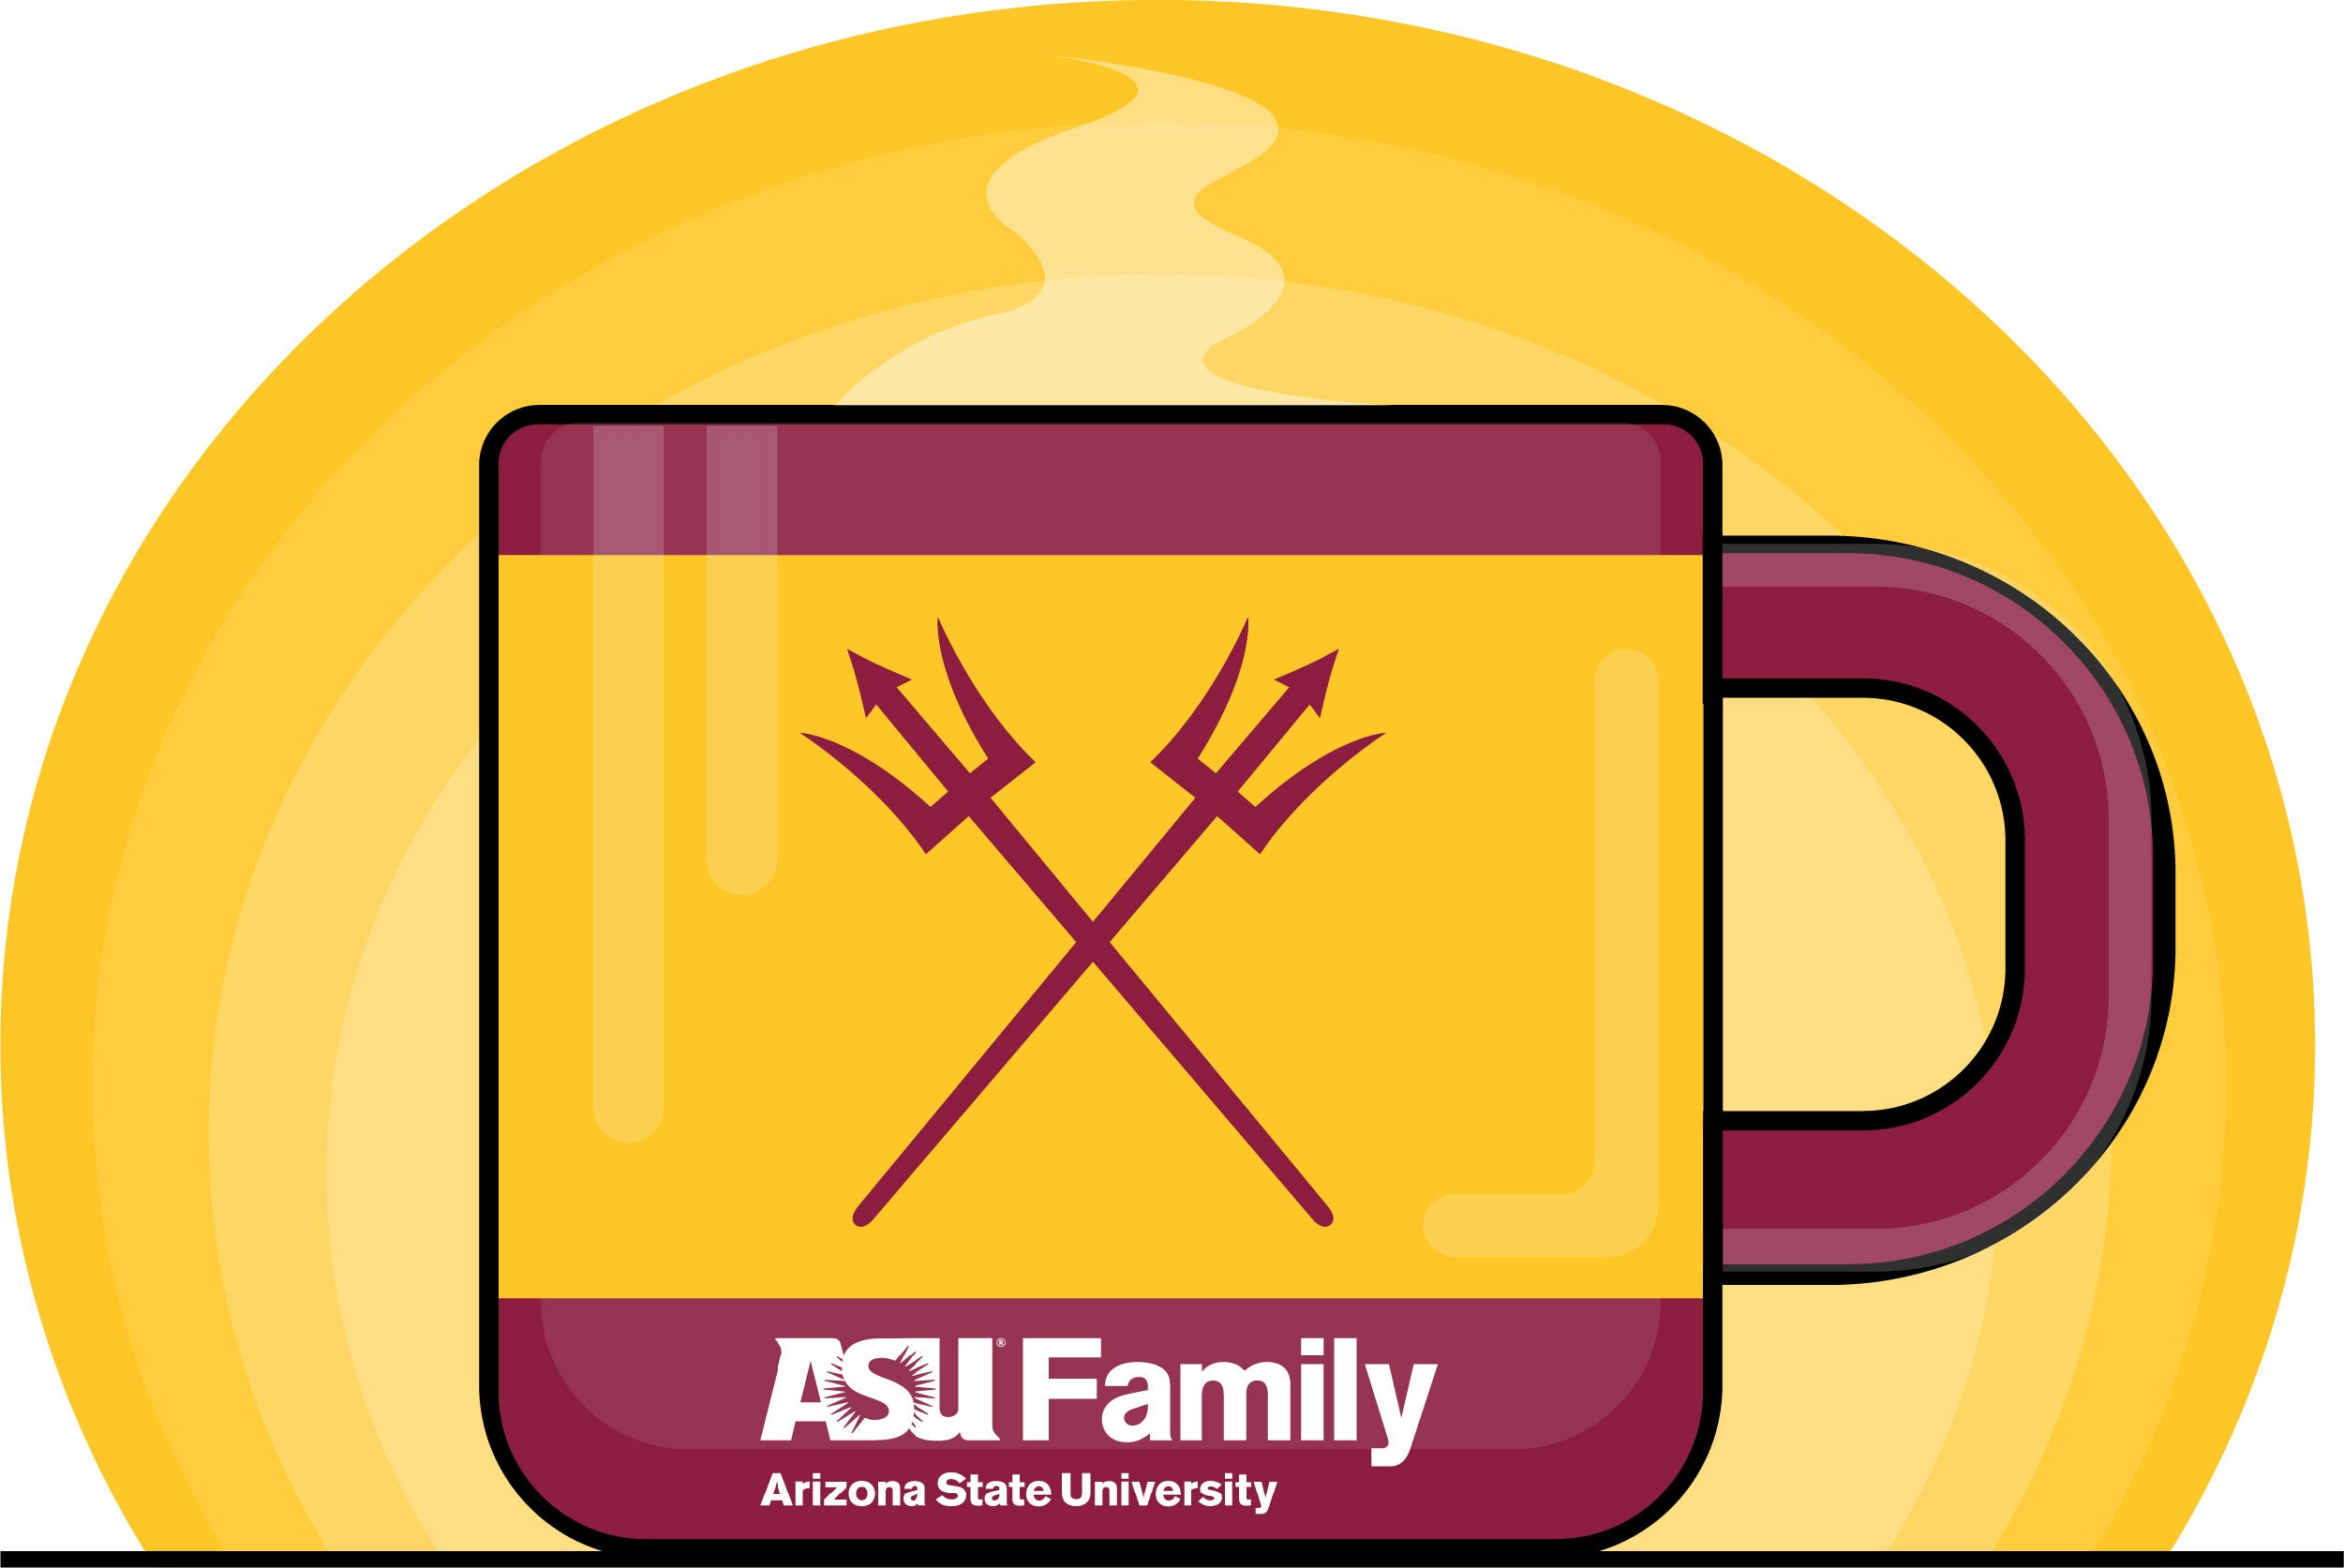 Art designed coffee mug graphic in ASU gold with maroon accents